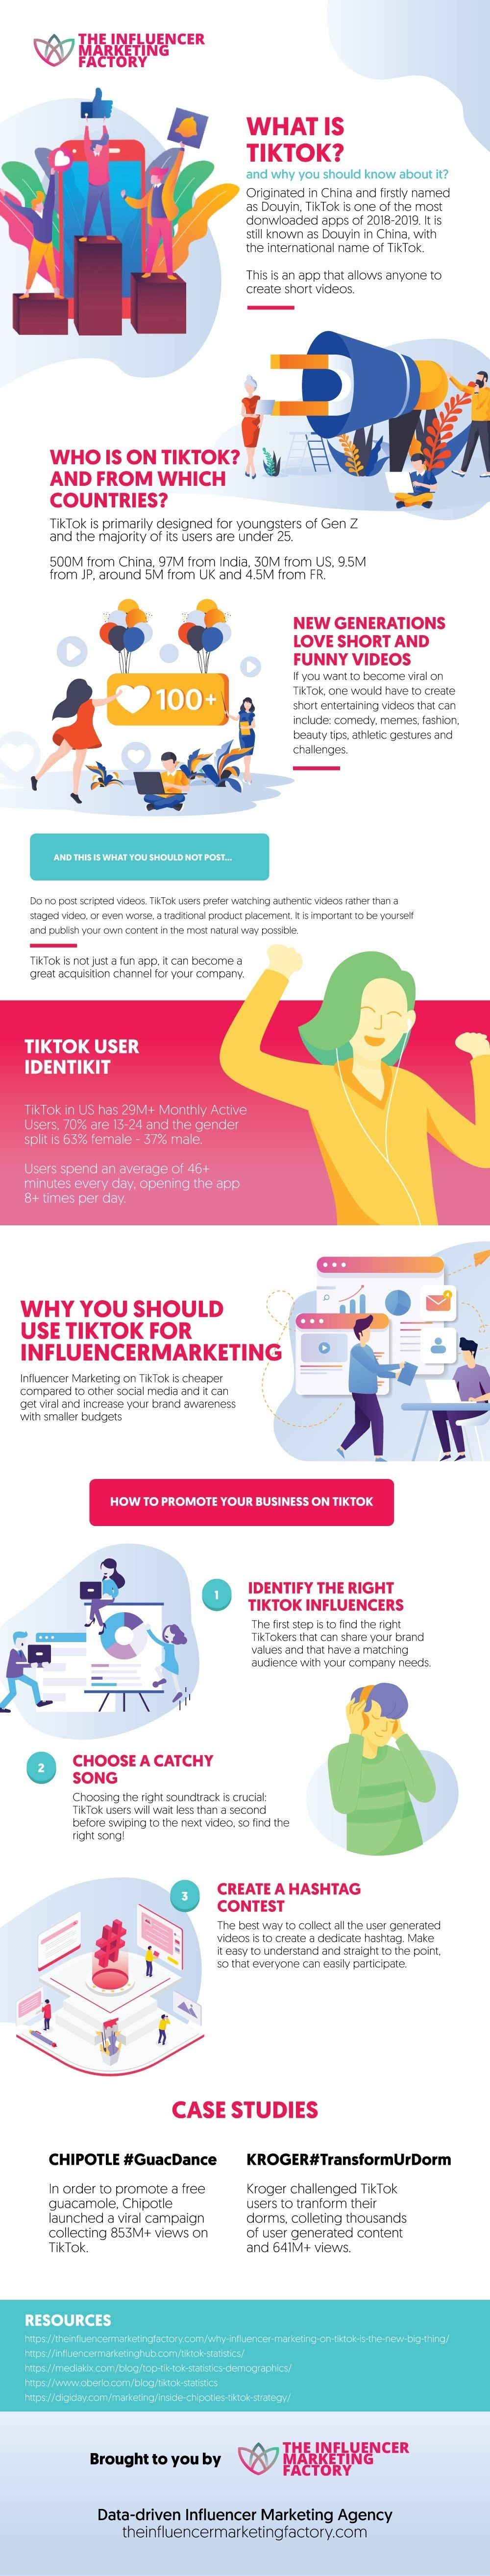 Why Influencer Marketing On Tiktok Is The New Big Thing Infographic Apps Social Midea Tik Tok Marketing Dicas